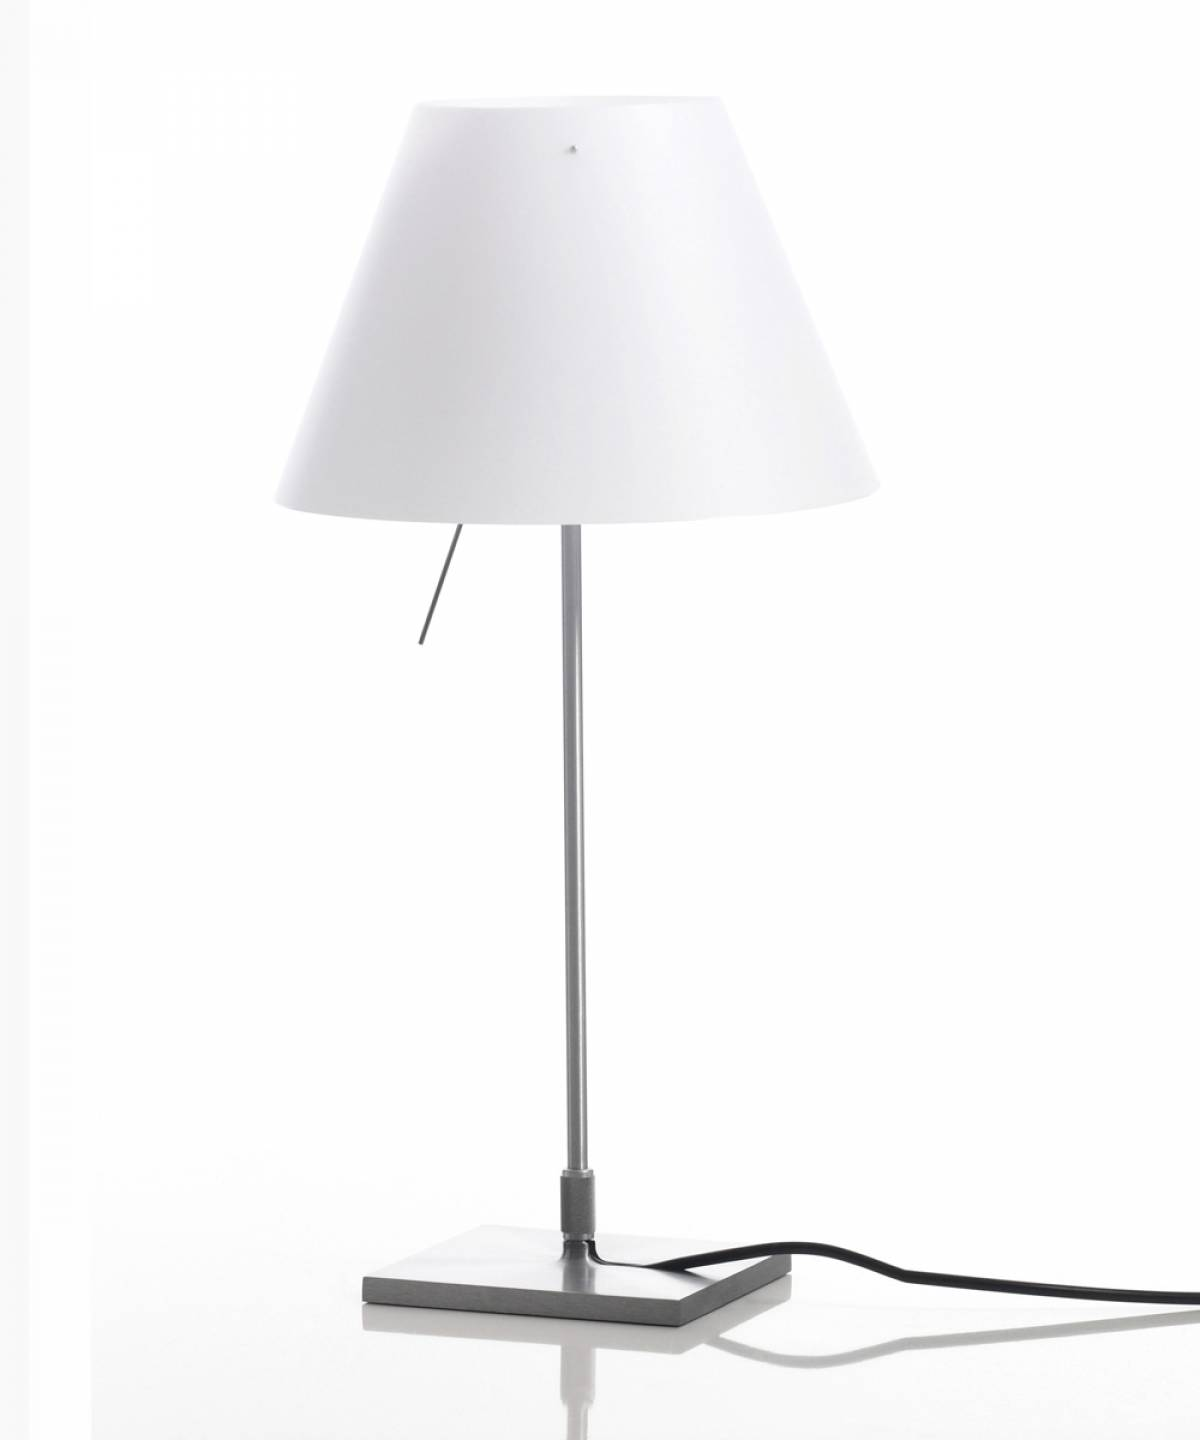 5 Costanzina table lamp Luceplan